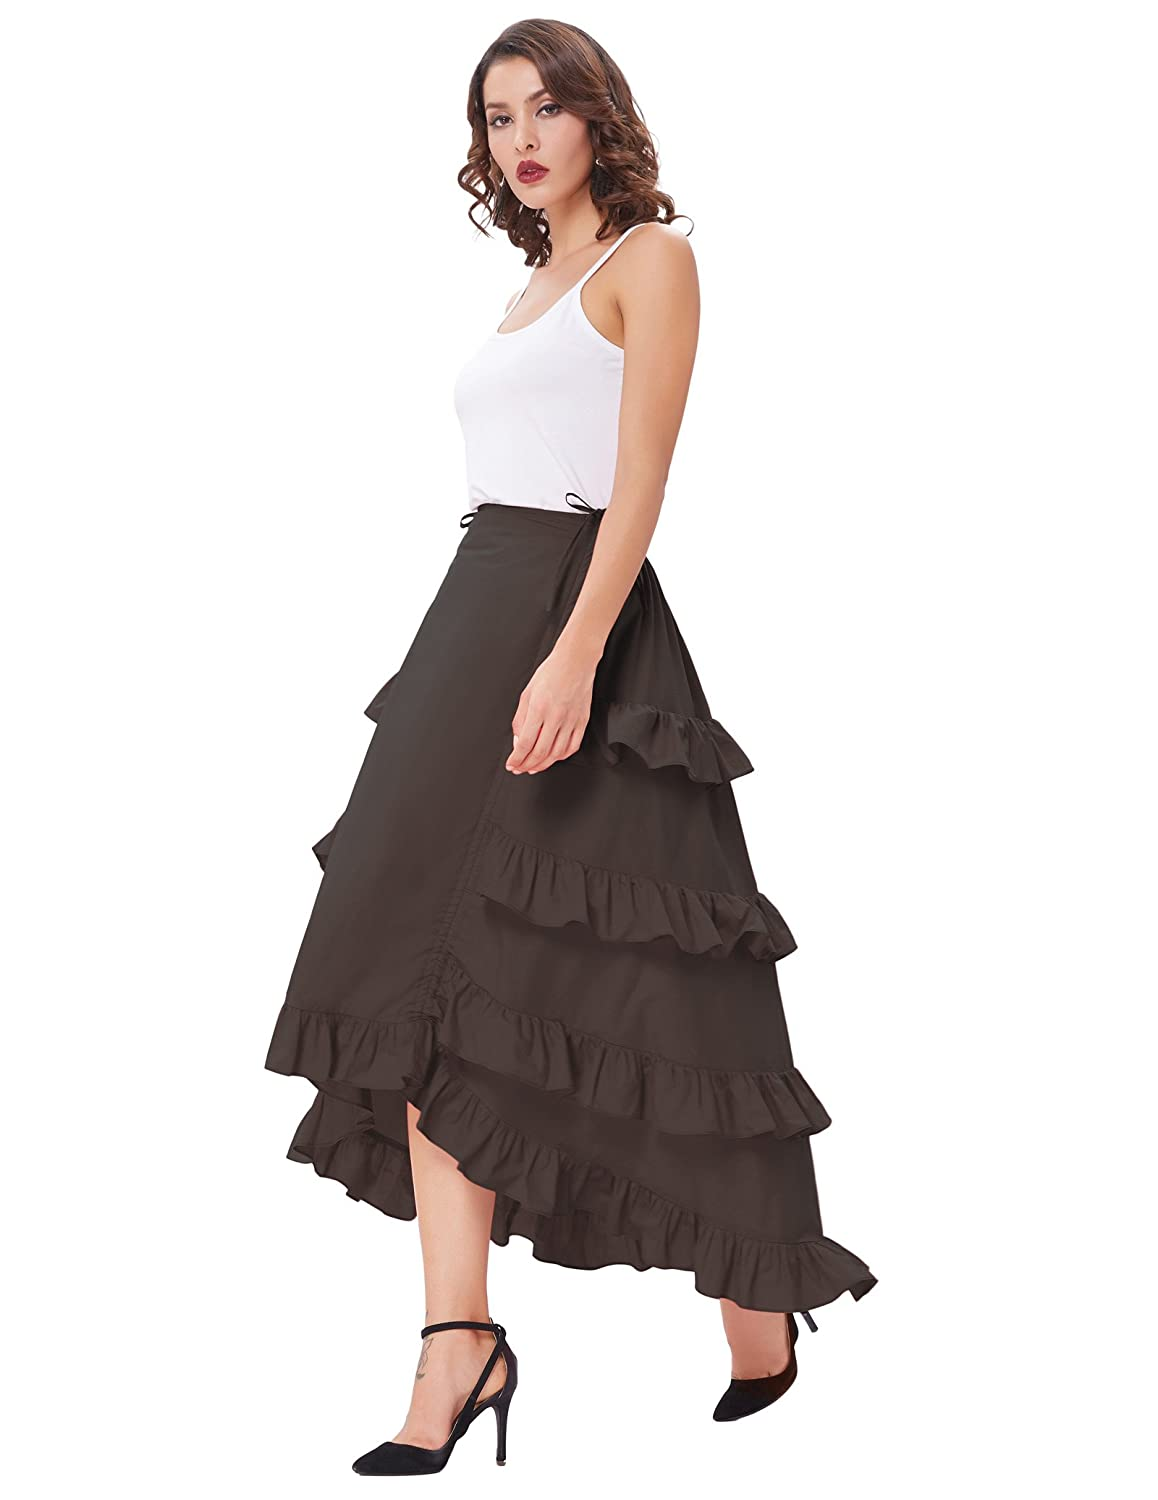 Steampunk Skirts | Bustle Skirts, Lace Skirts, Ruffle Skirts Belle Poque Womens Custom Steampunk Cocktail Party Skirts Black $25.99 AT vintagedancer.com